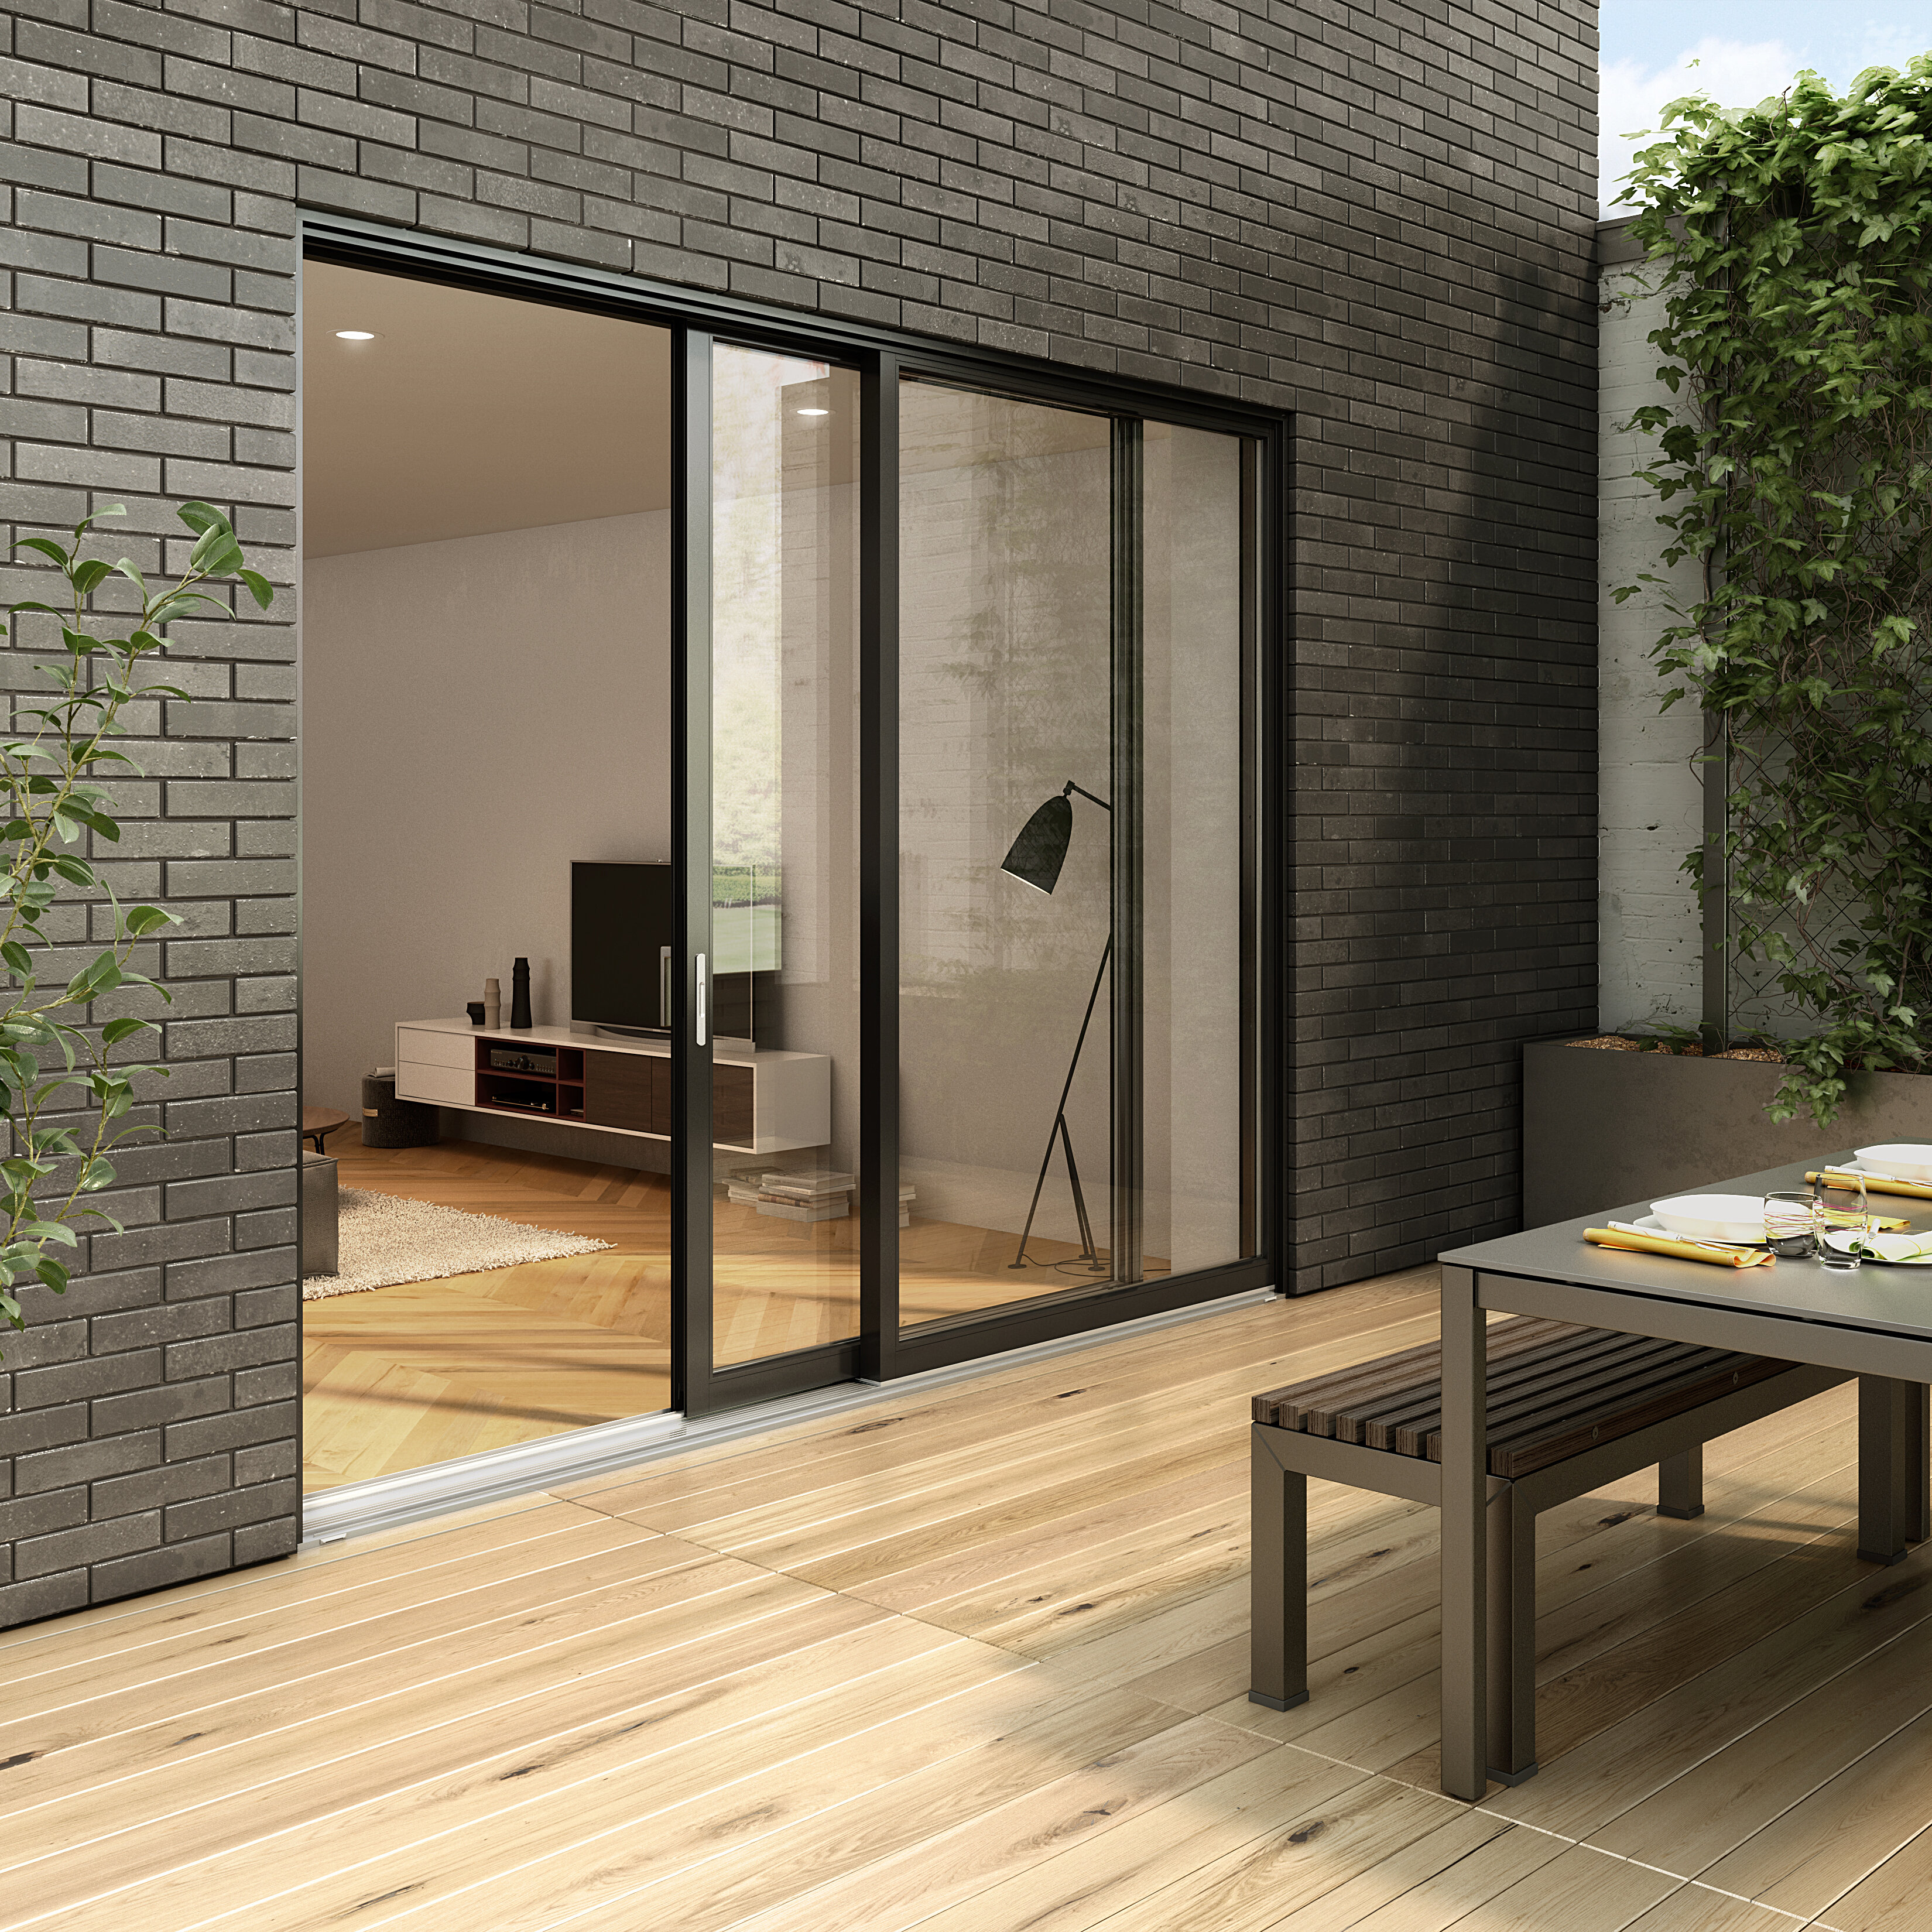 The loft patio door category image for aluminum patio doors